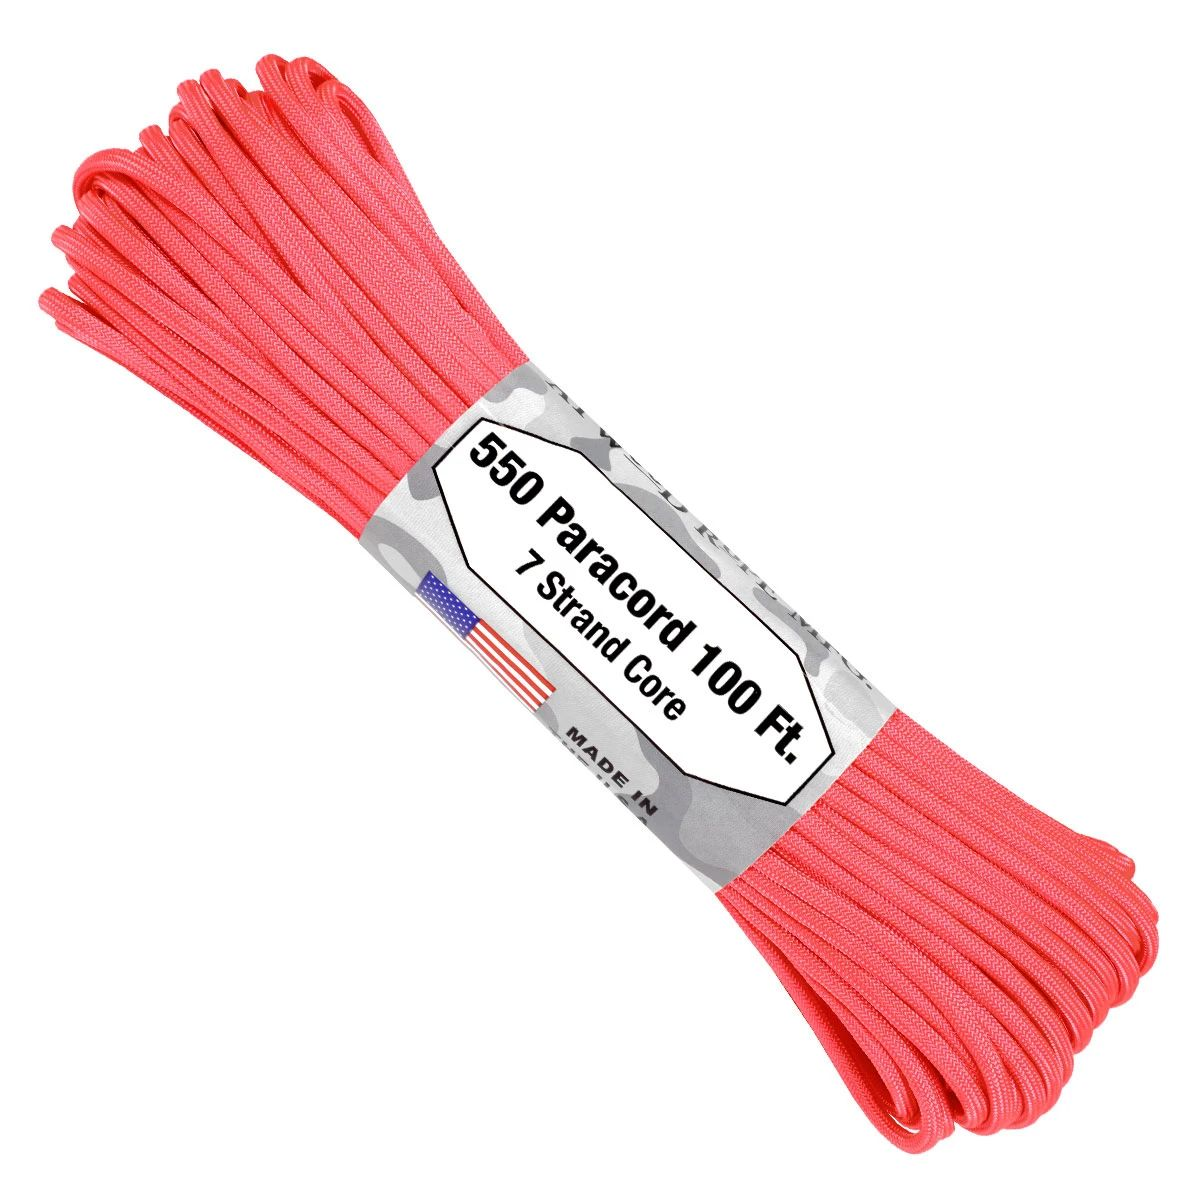 550 Paracord - 100ft - Pink - Made in USA